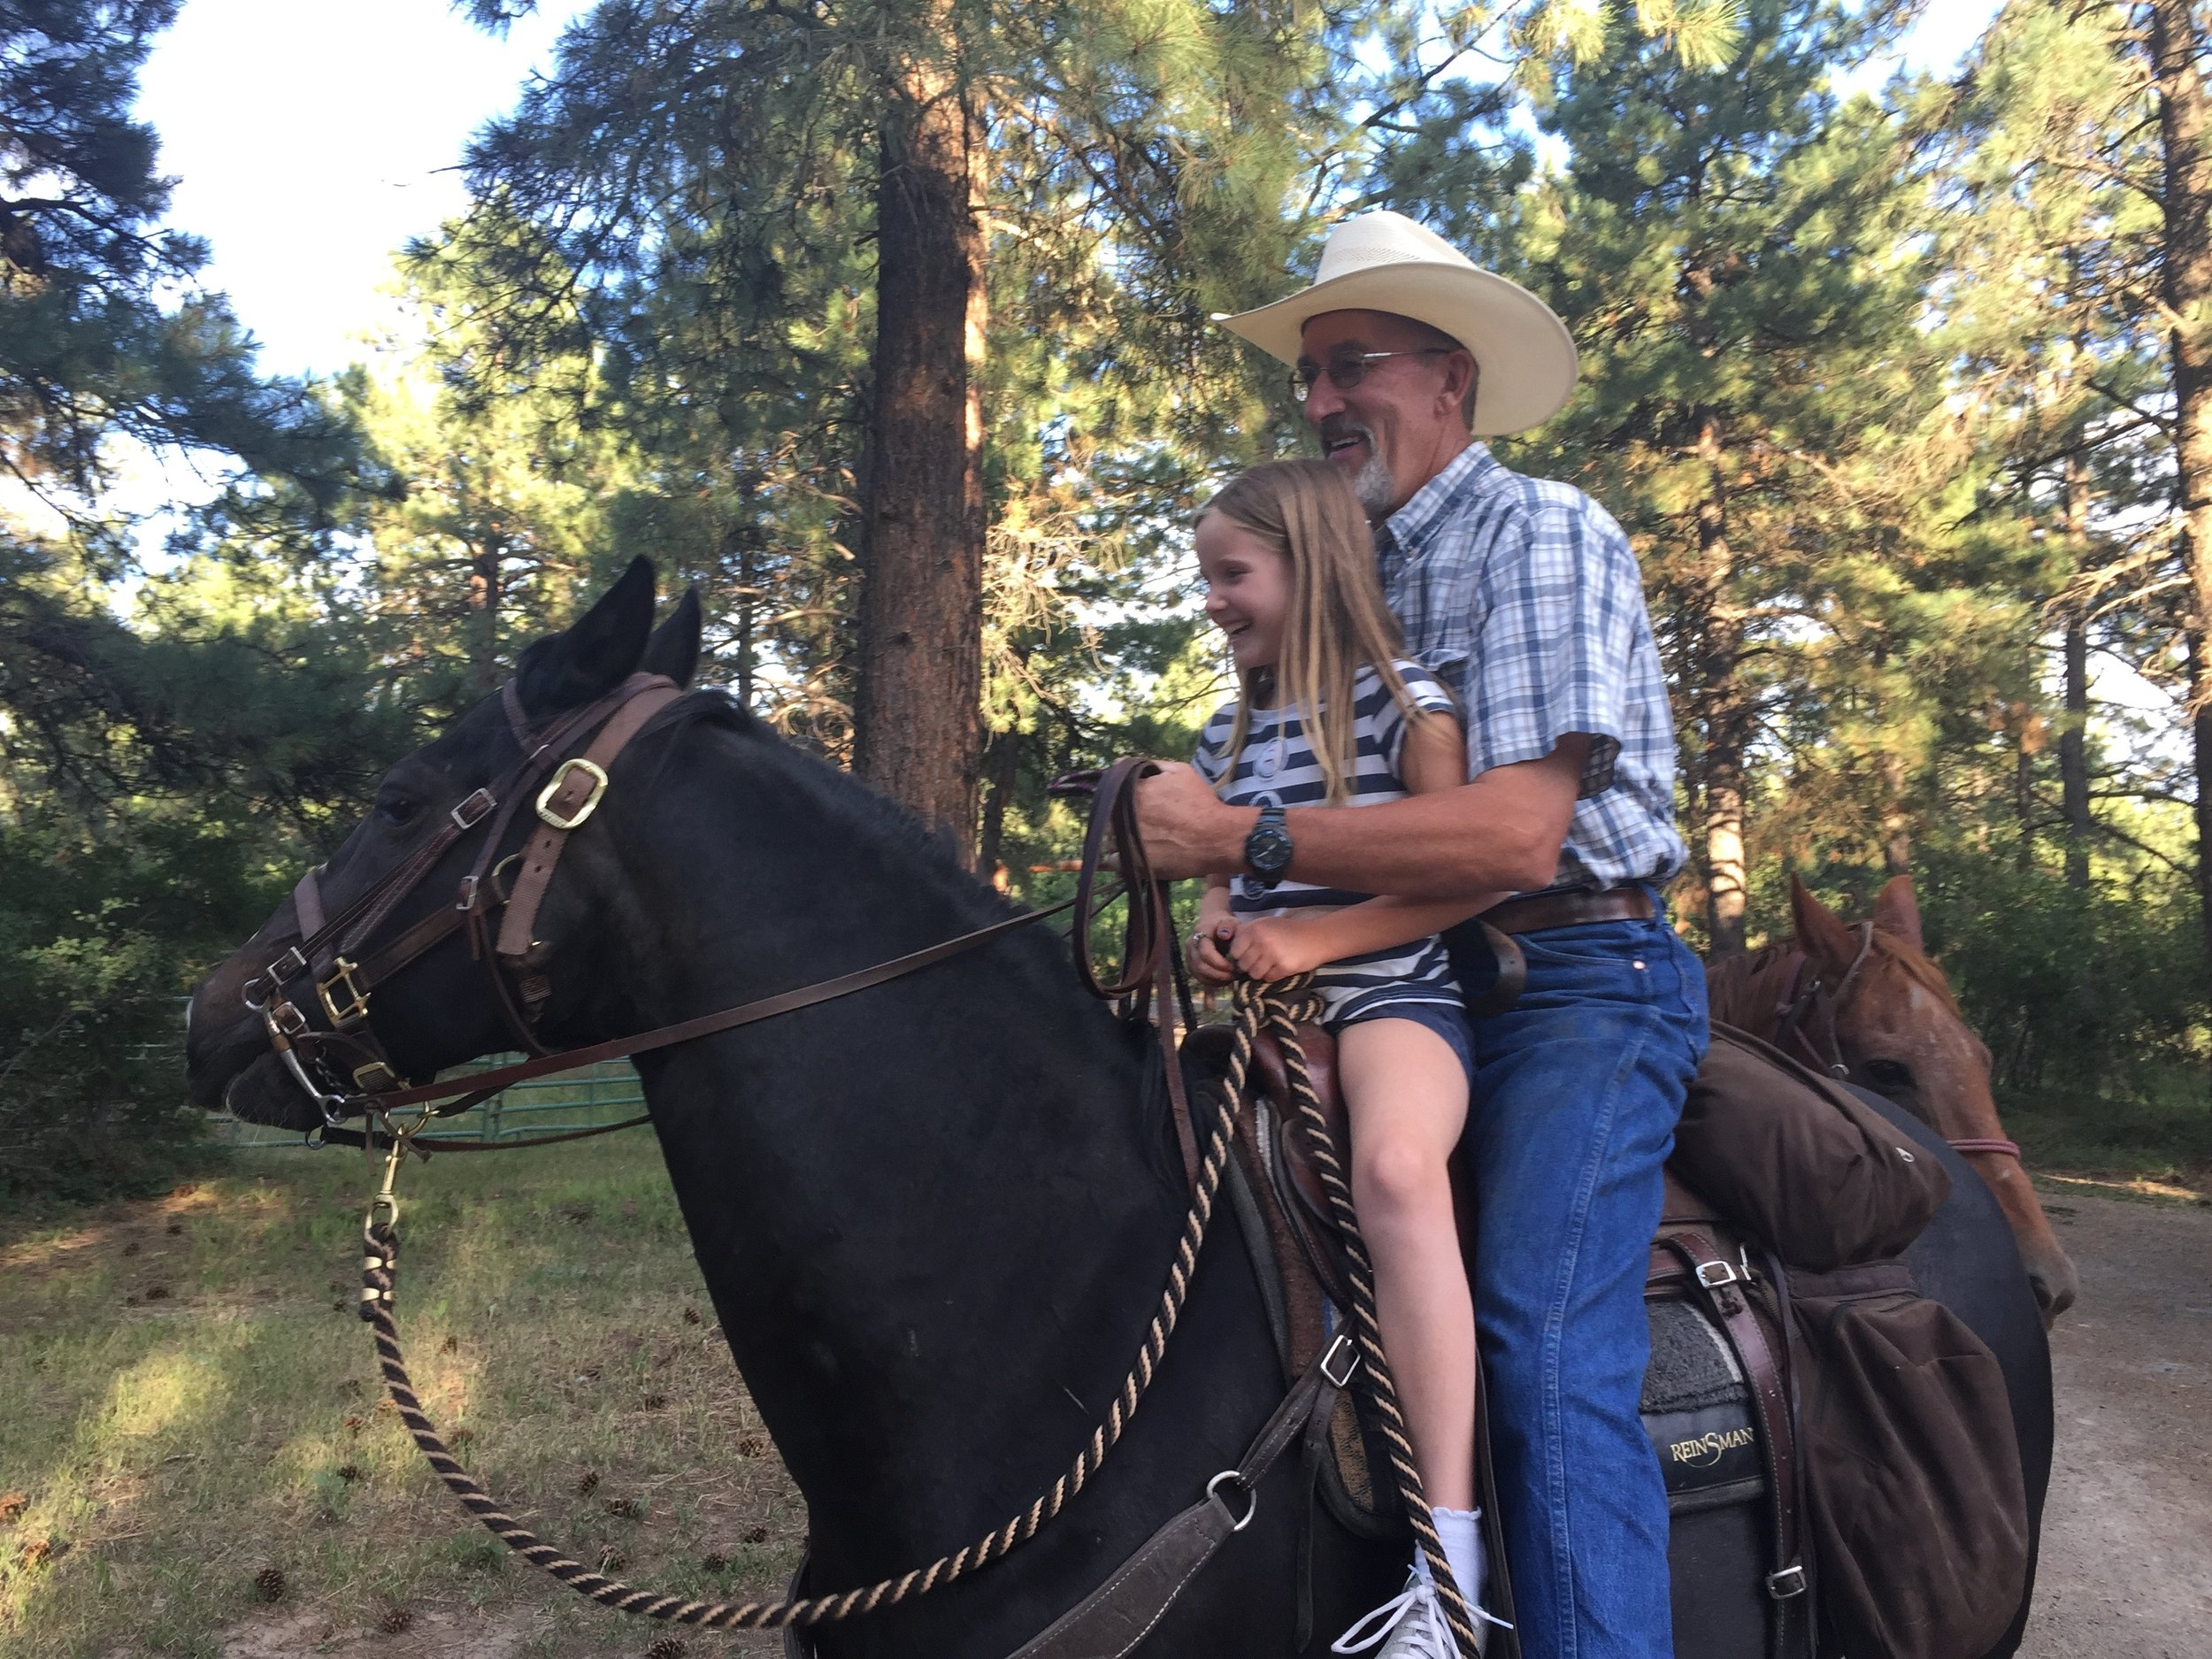 Leah and Uncle James on Bandit.